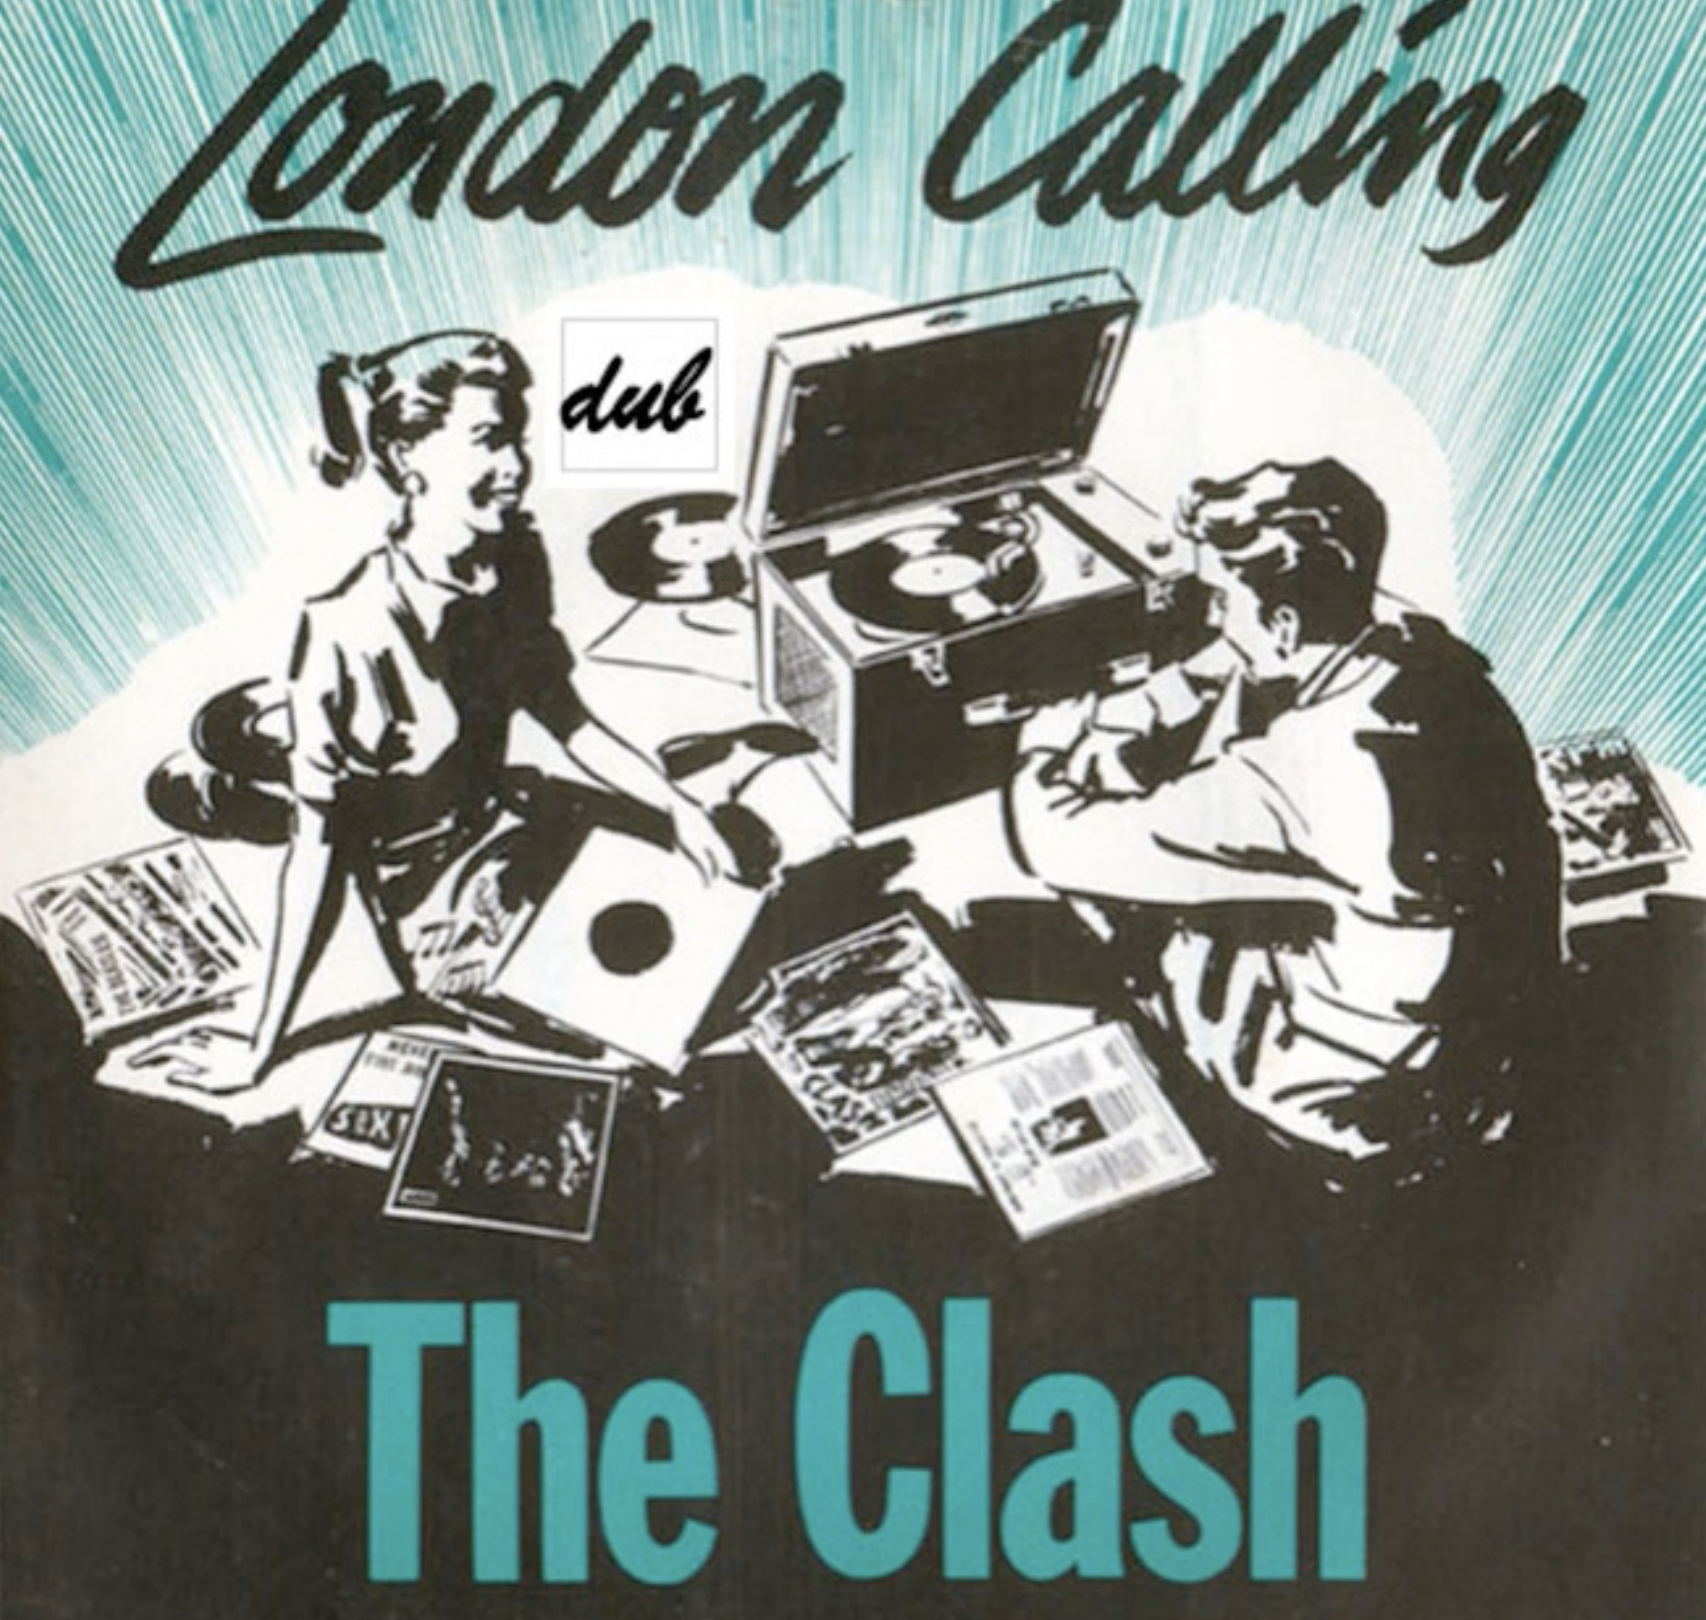 THE CLASH  London calling (dub version) (DoM)